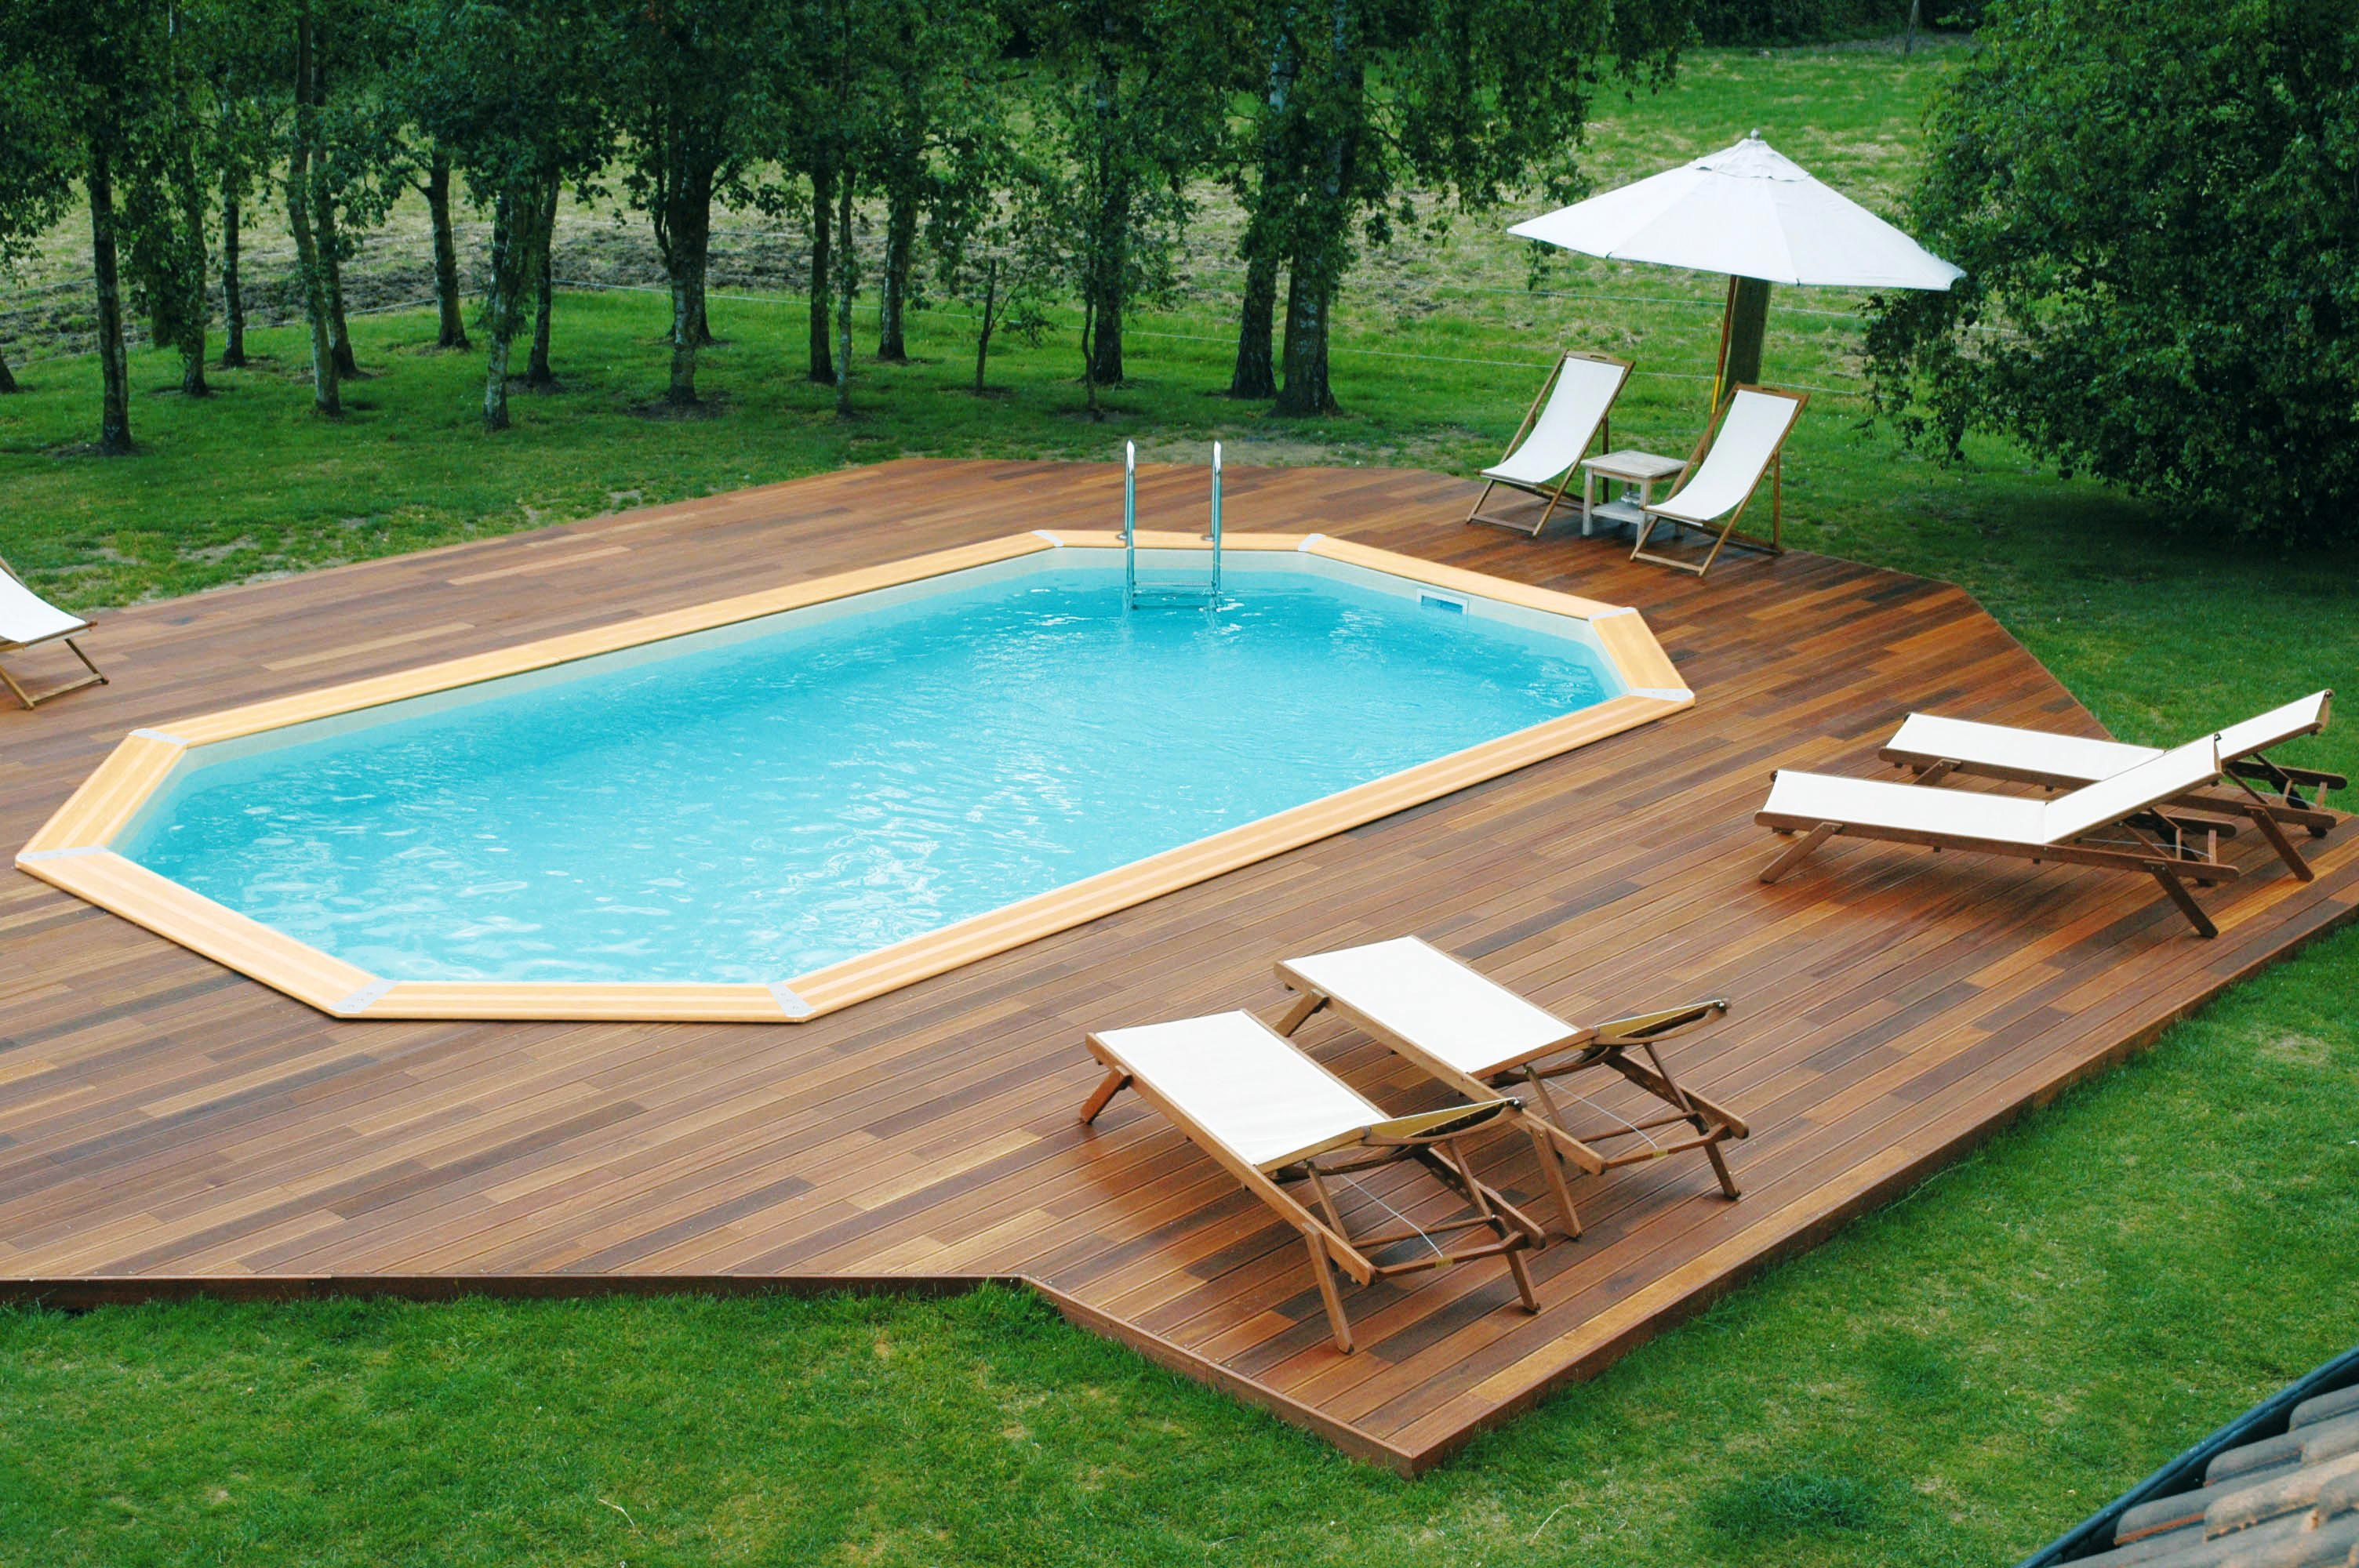 Luxe piscine enterr e pour petit jardin piscine for Piscine semi enterree 10m2